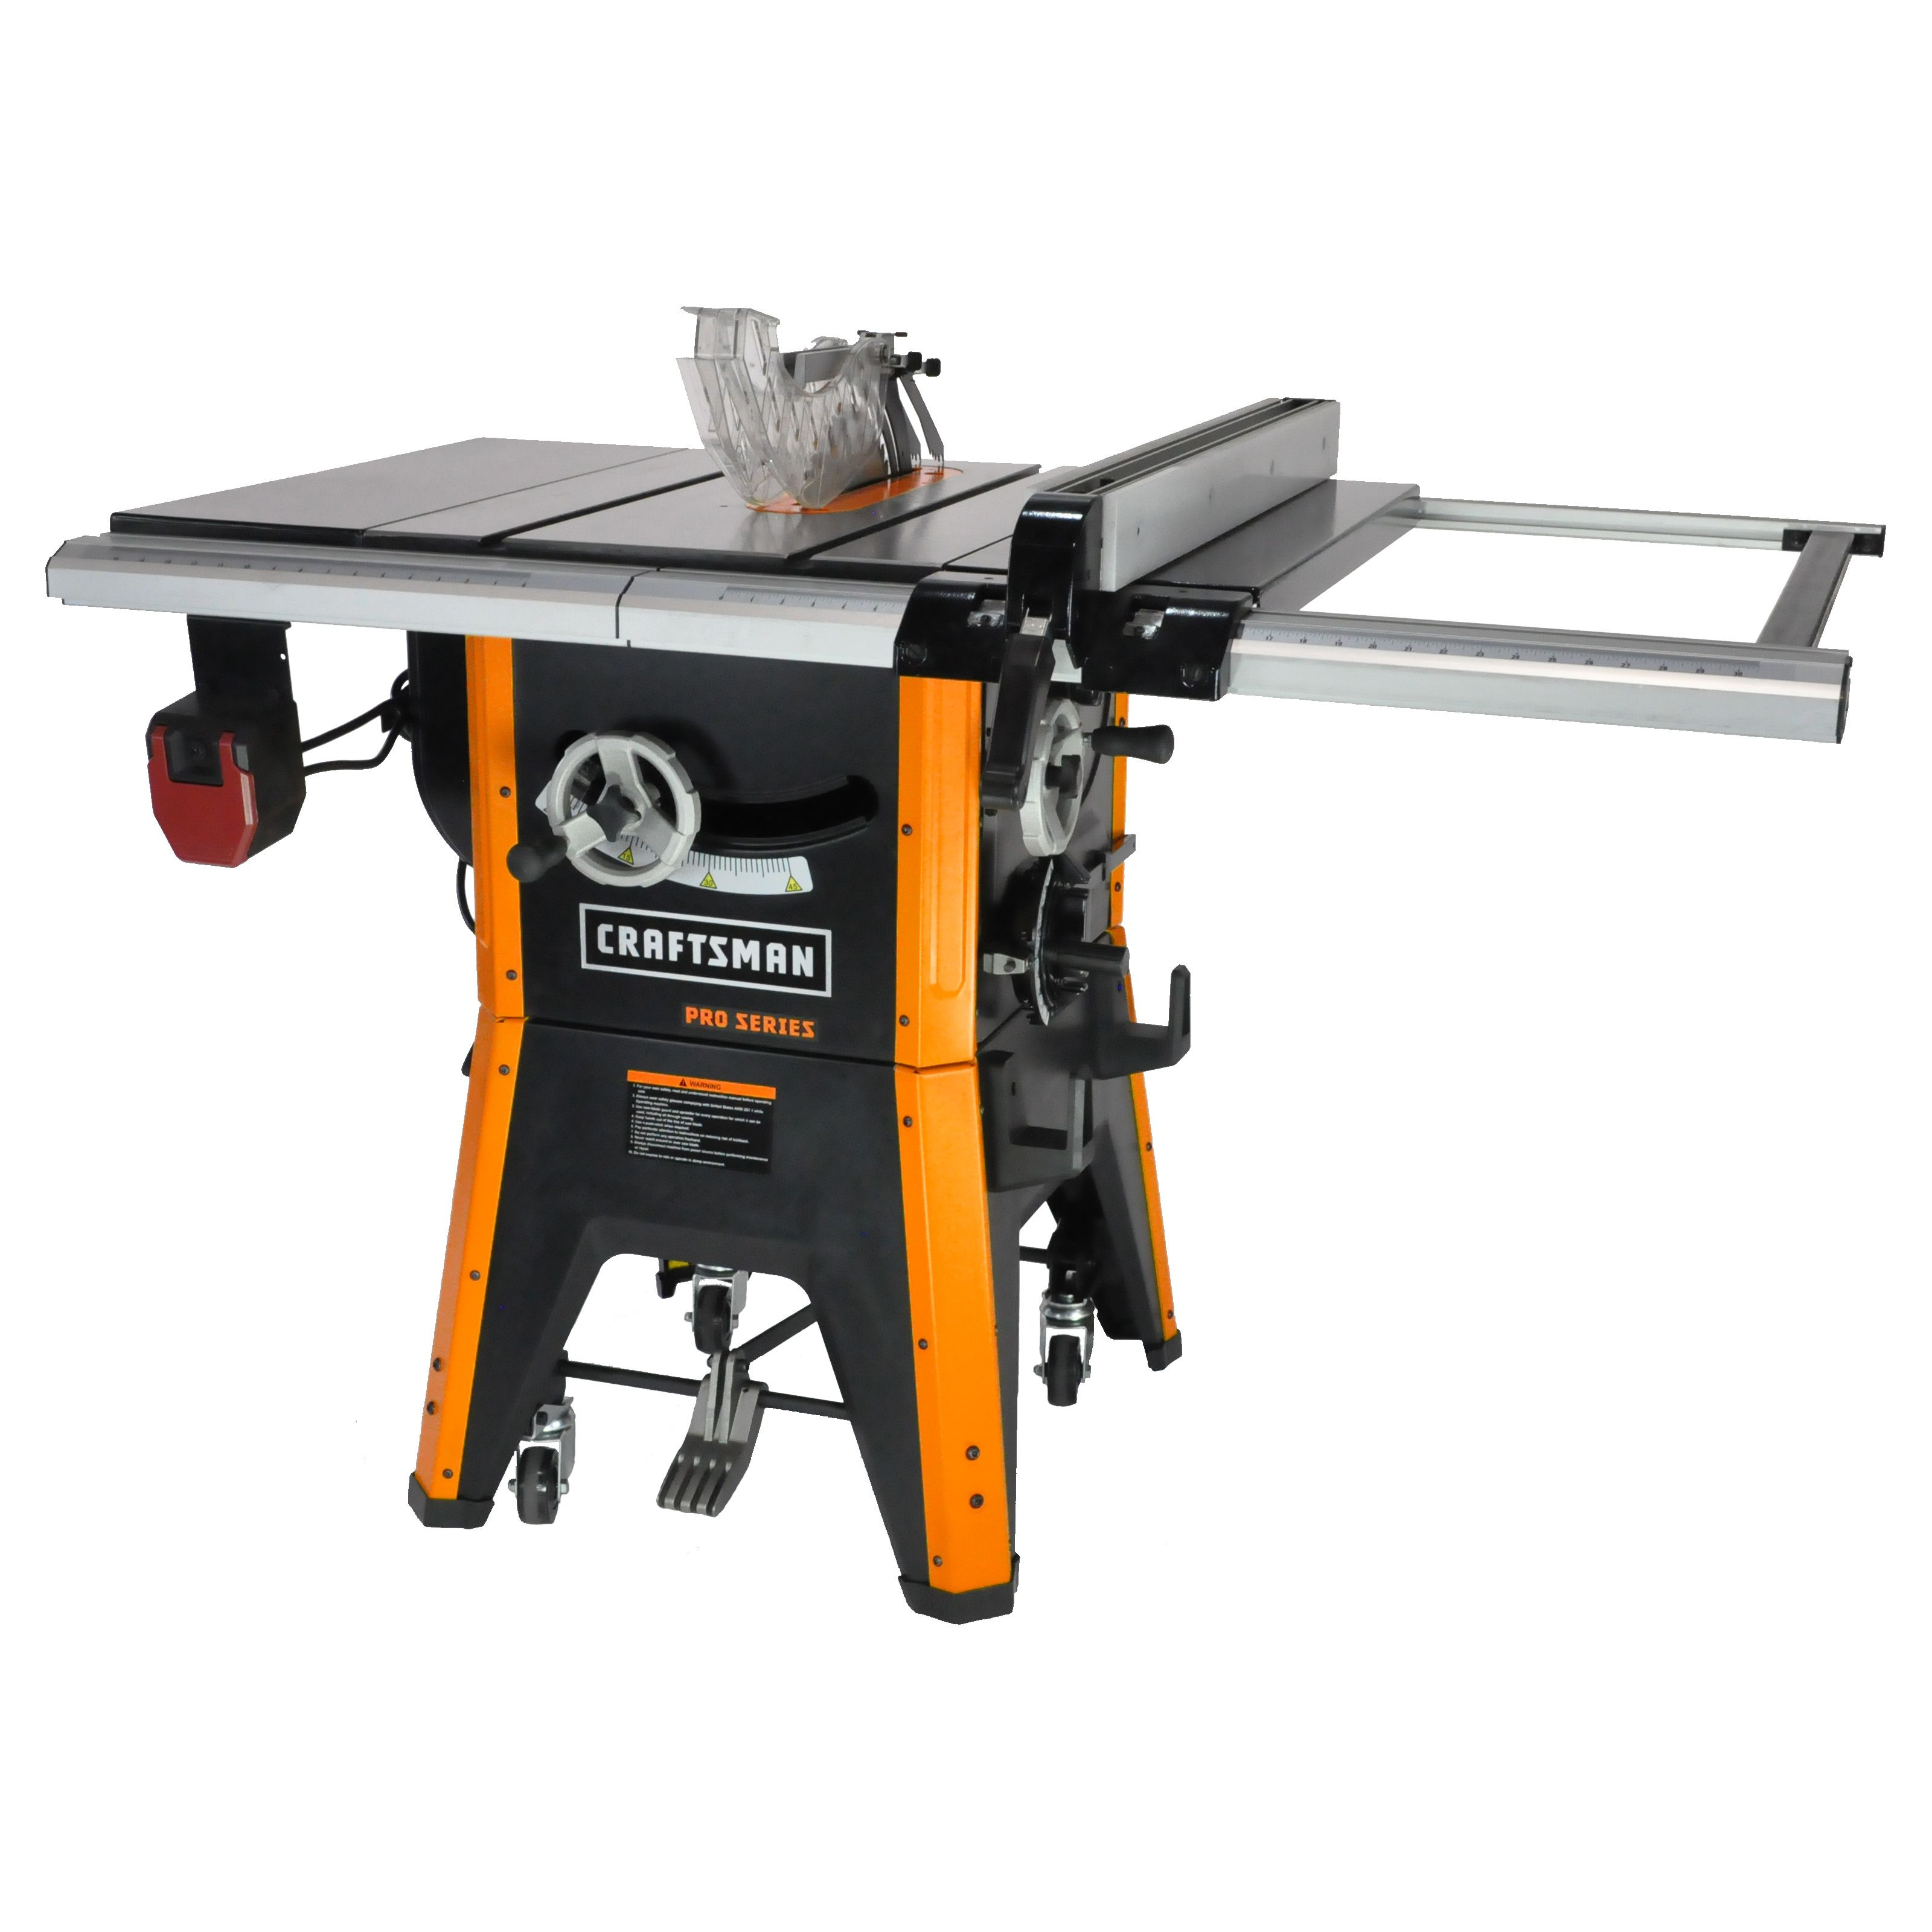 10 In Blade Powered By A Potent 1 3 4 Hp 3450 Rpm Motor Heavy Duty Cast Iron Table 599 Contractor Table Saw Hybrid Table Saw Table Saw